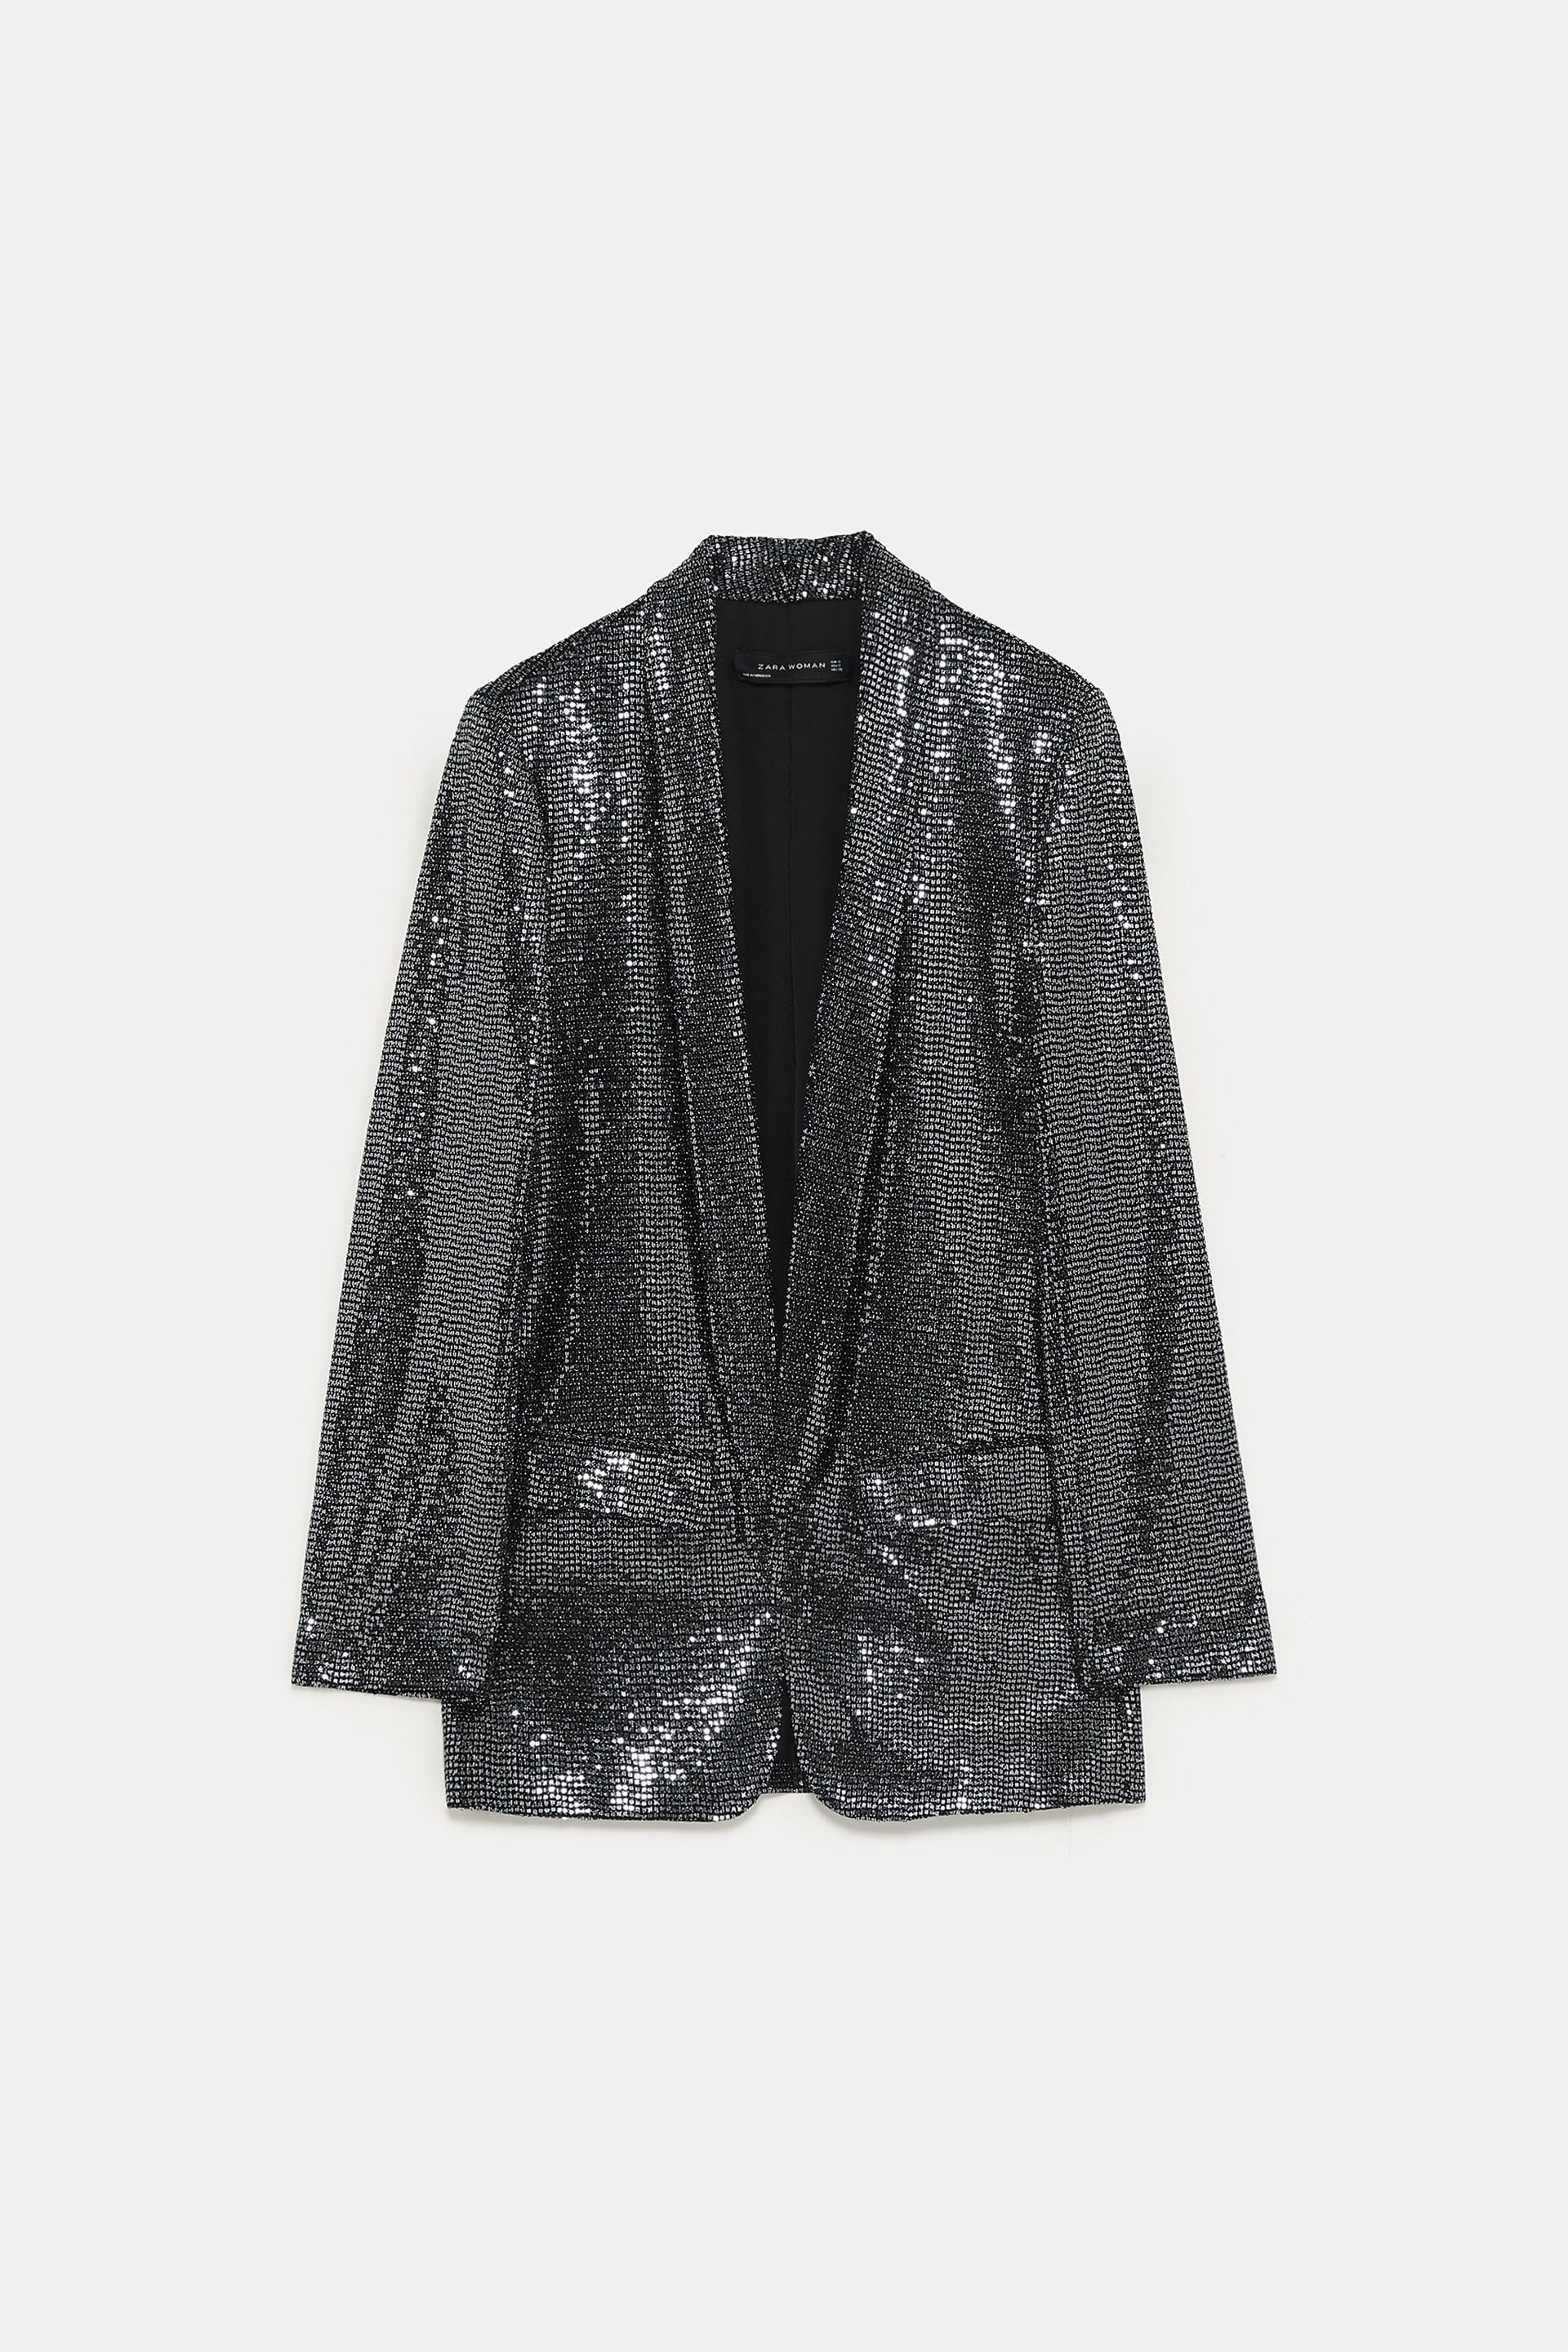 553129d9 Image 7 of SEQUIN JACKET from Zara | Fashion is the new Black ...